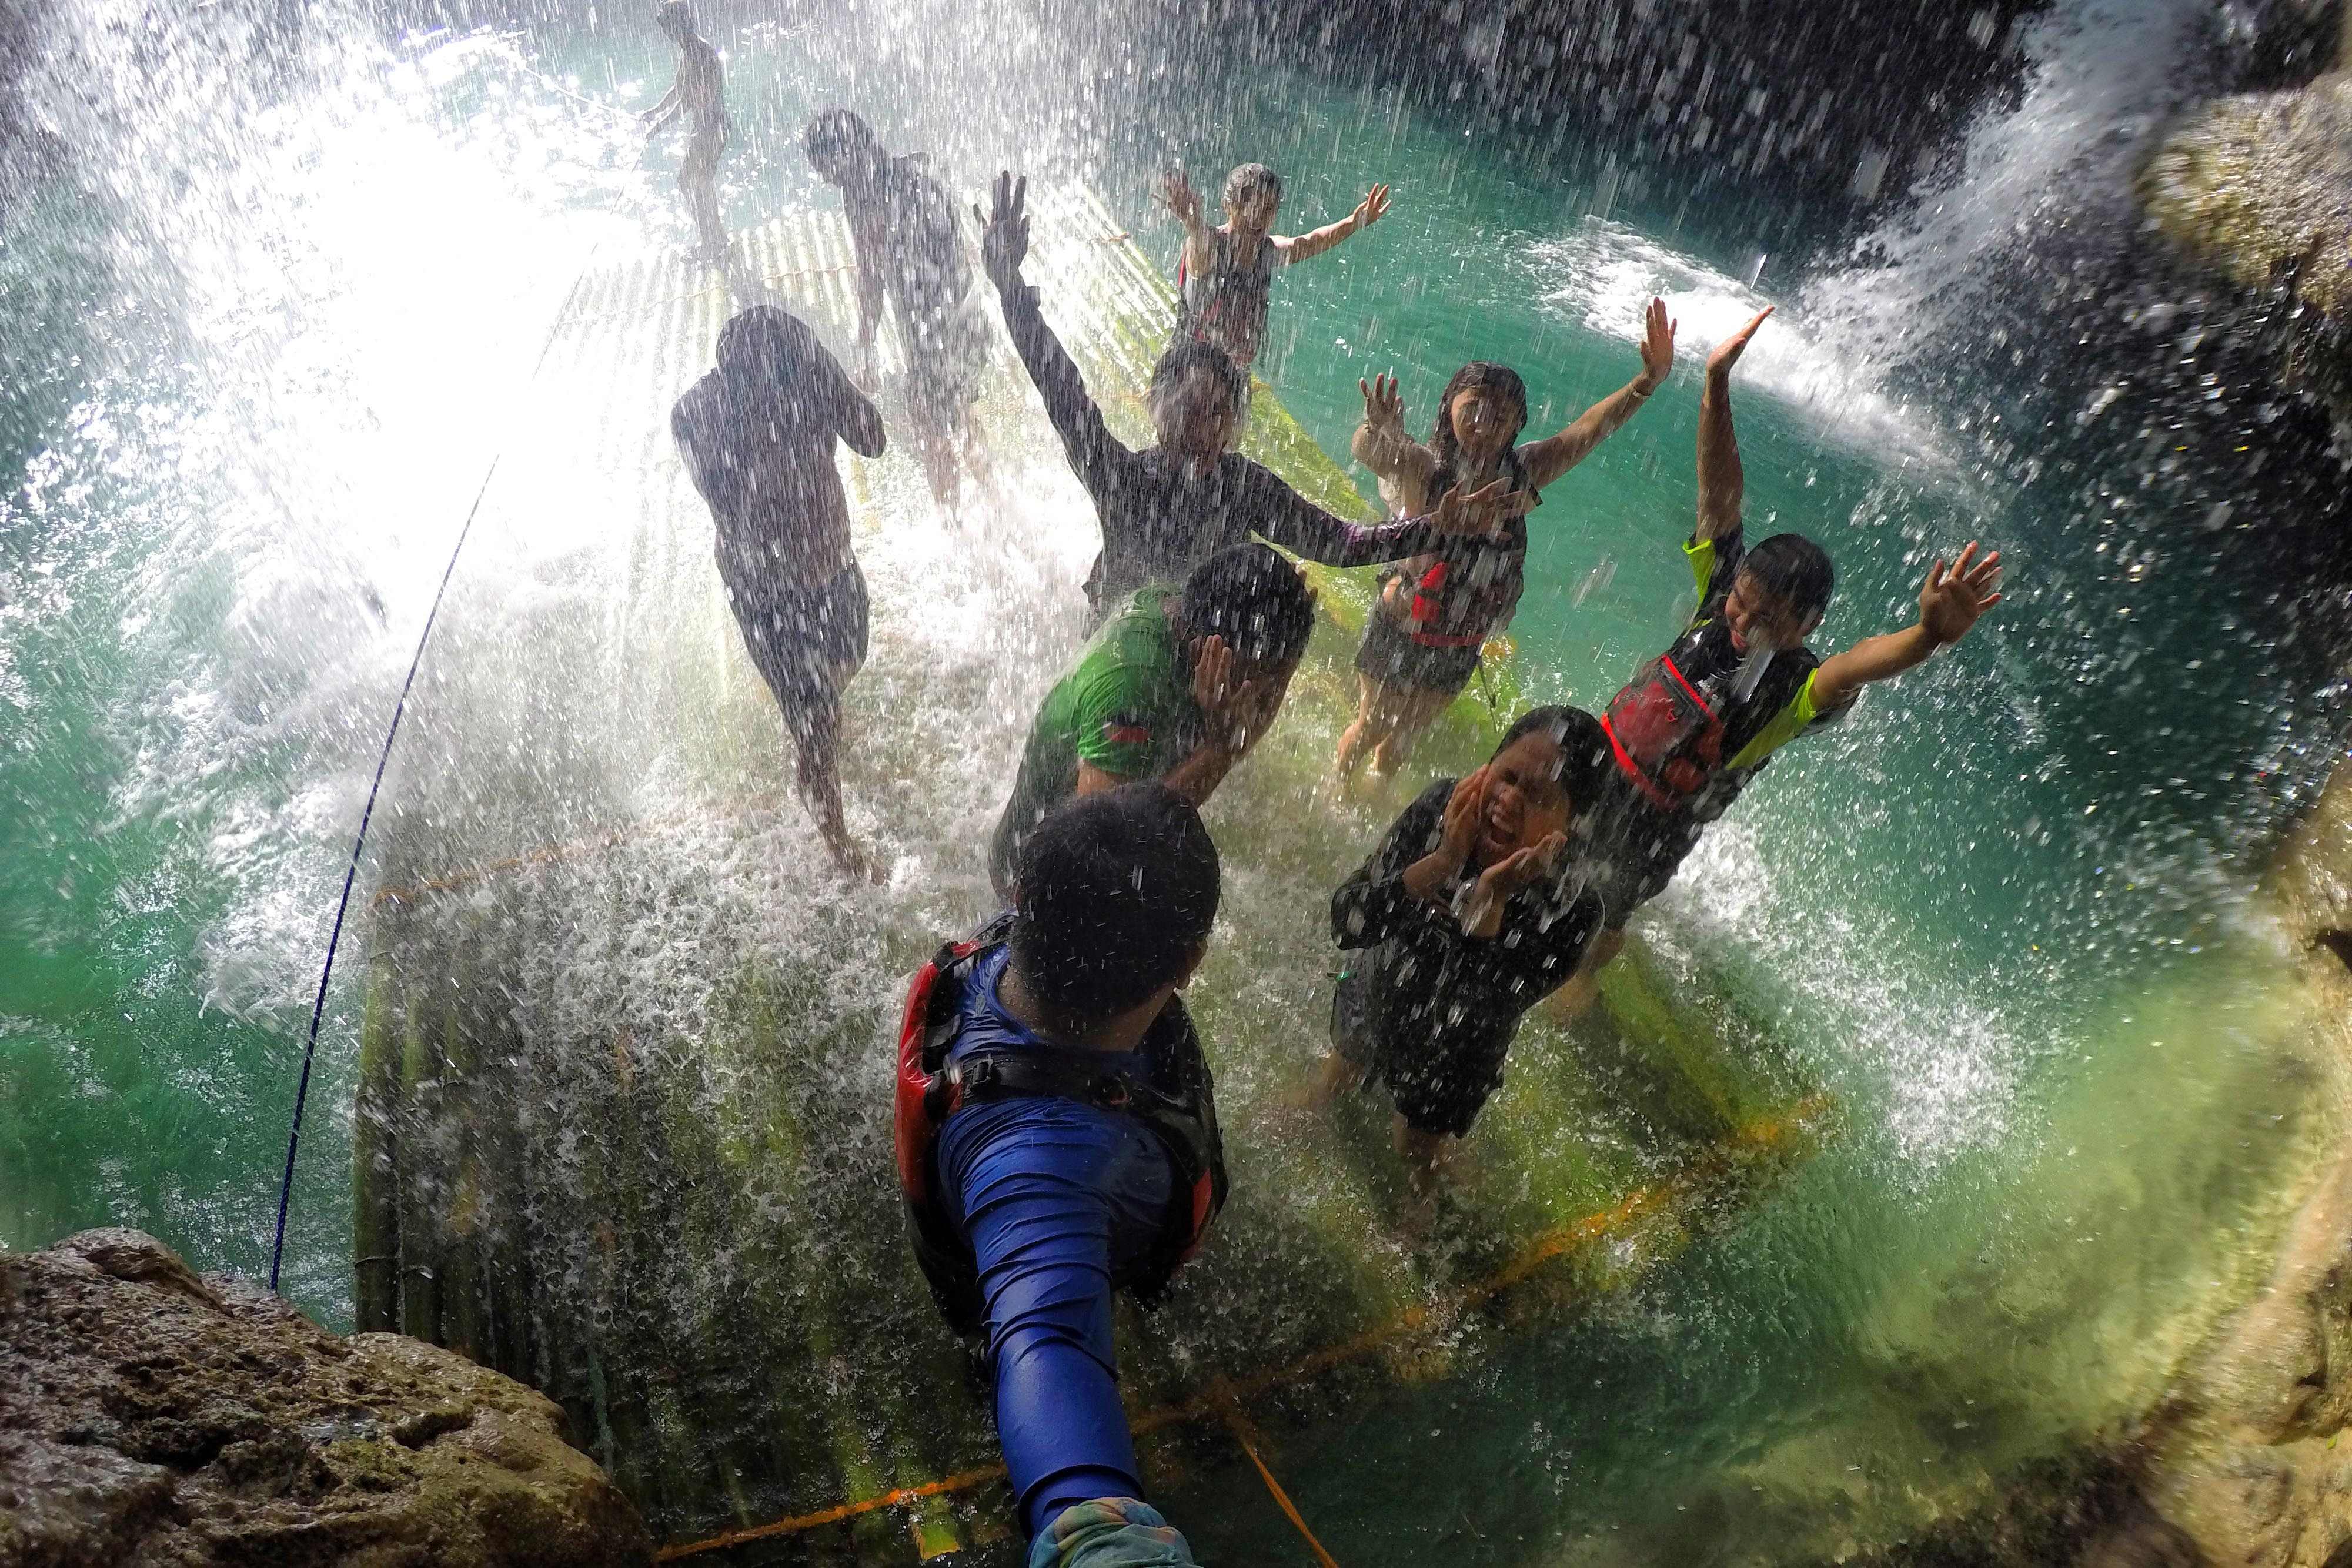 NATURE'S MASSAGE. At the second level of Kawasan, this giant shower can soothe body pains as its cascading water seems like a massage. Photo by Louie Lapat/Rappler